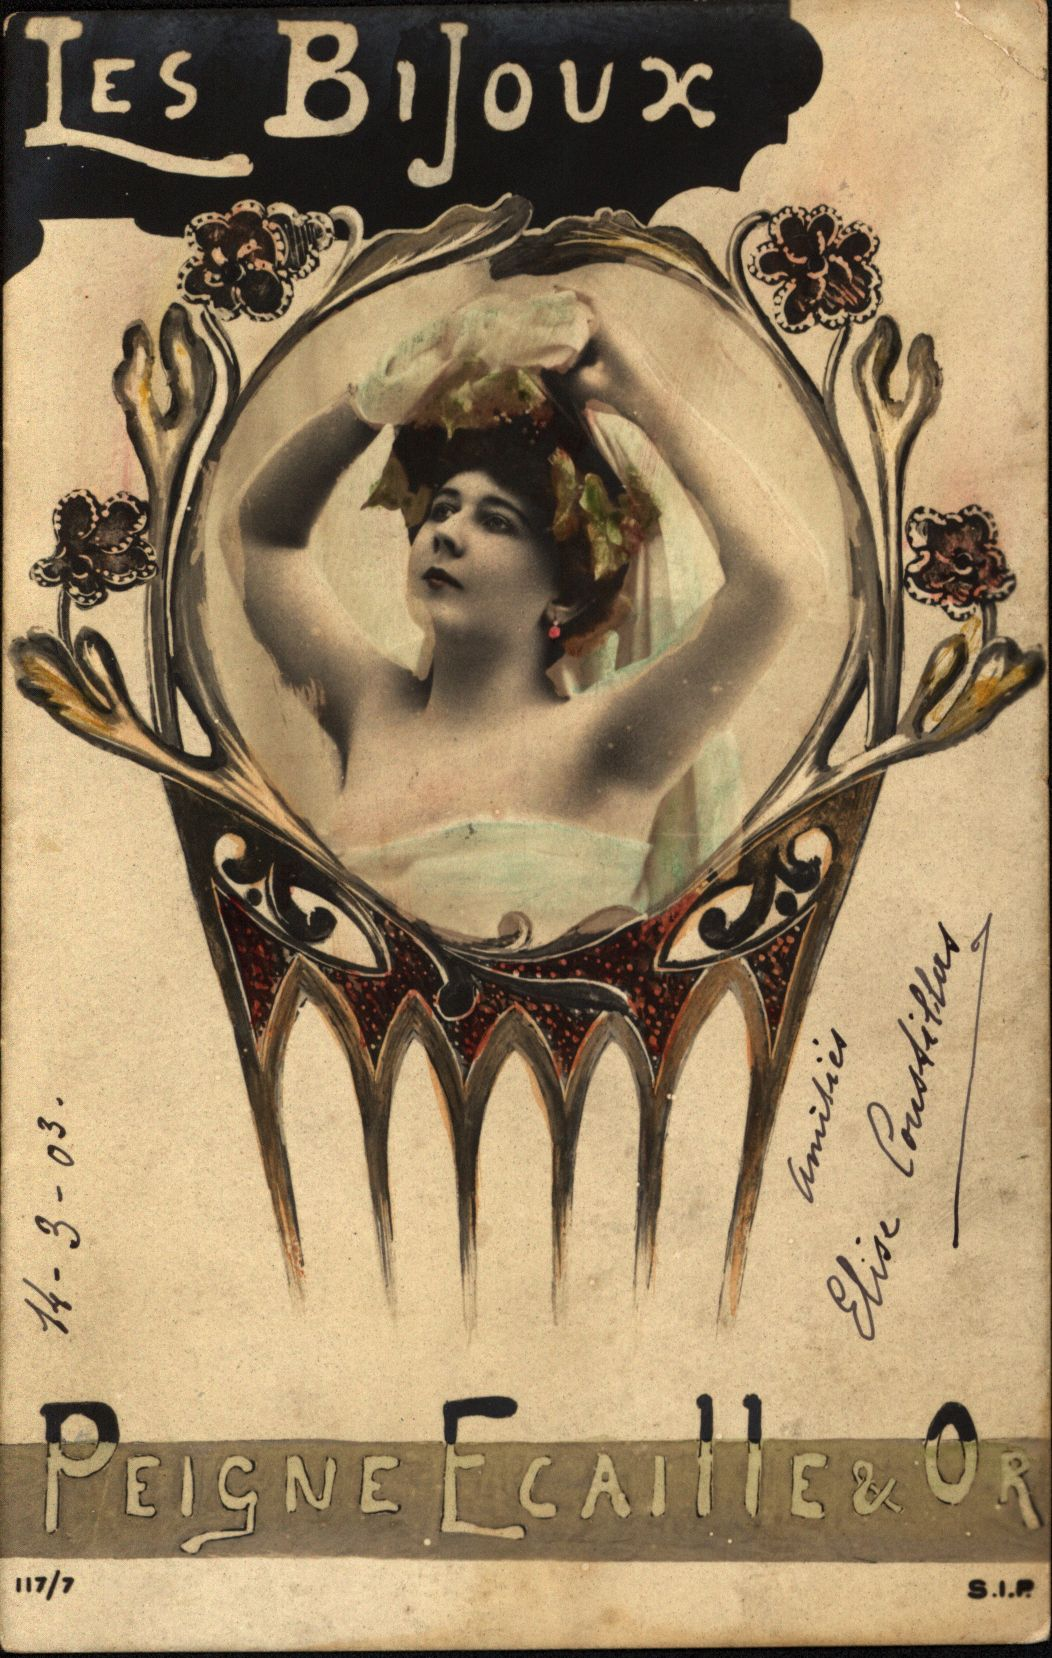 postcard with inscription in French